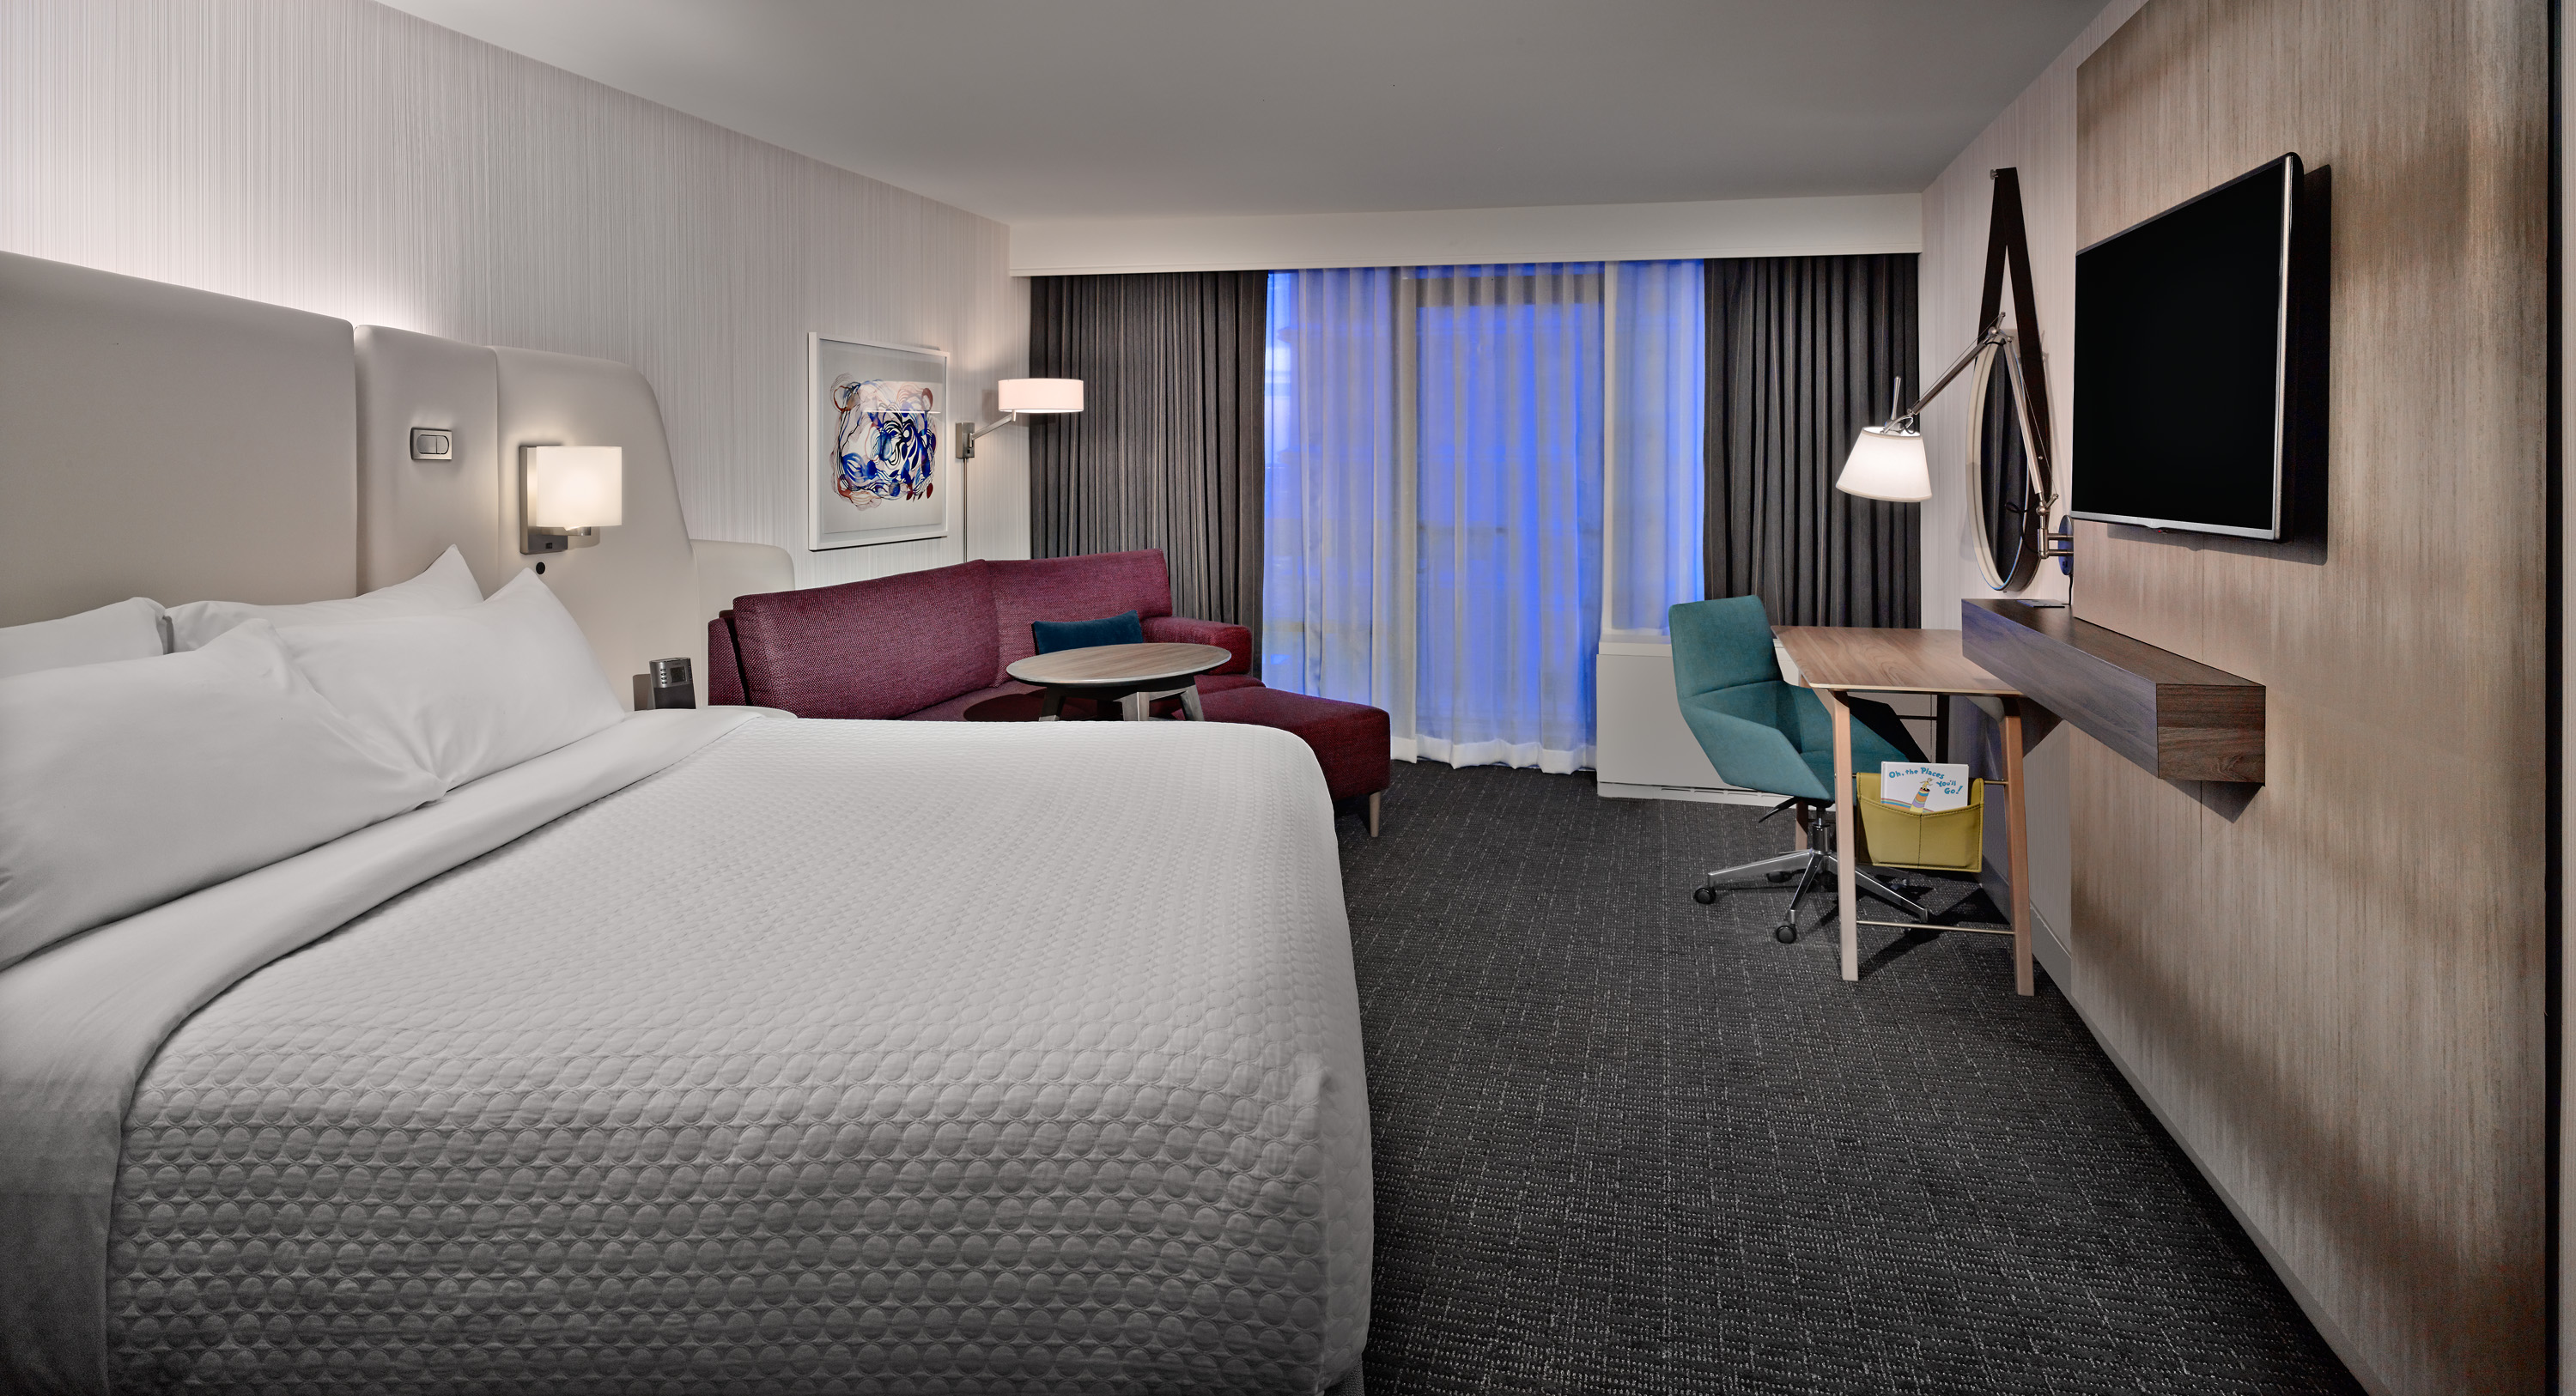 WorkLife guestrooms with king beds have sofas with a chaise lounge and a large table.